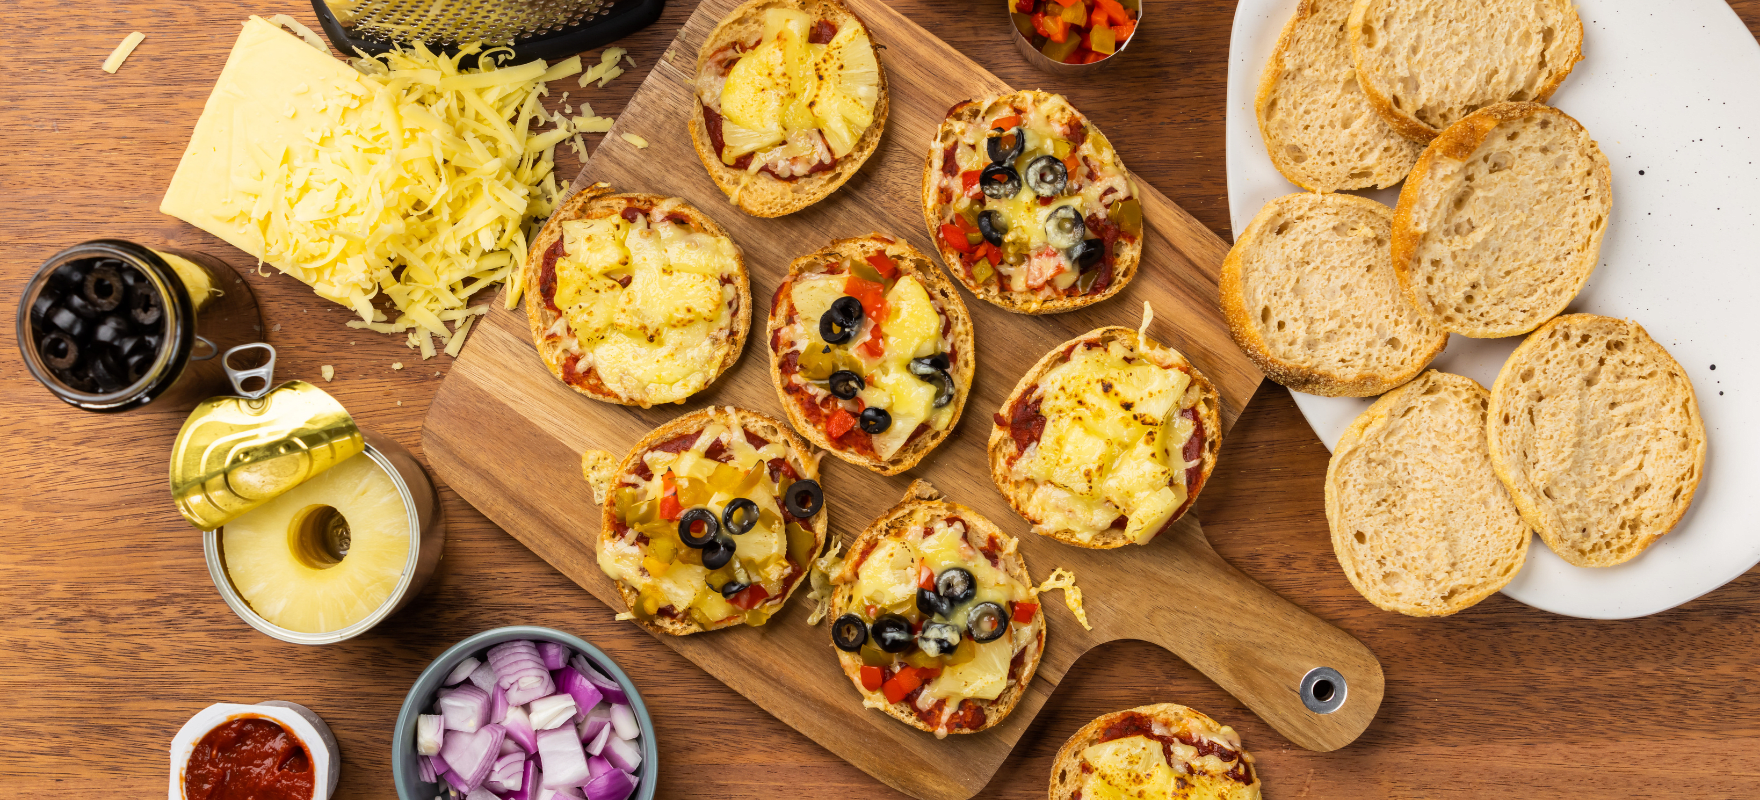 Pizza muffins image 3